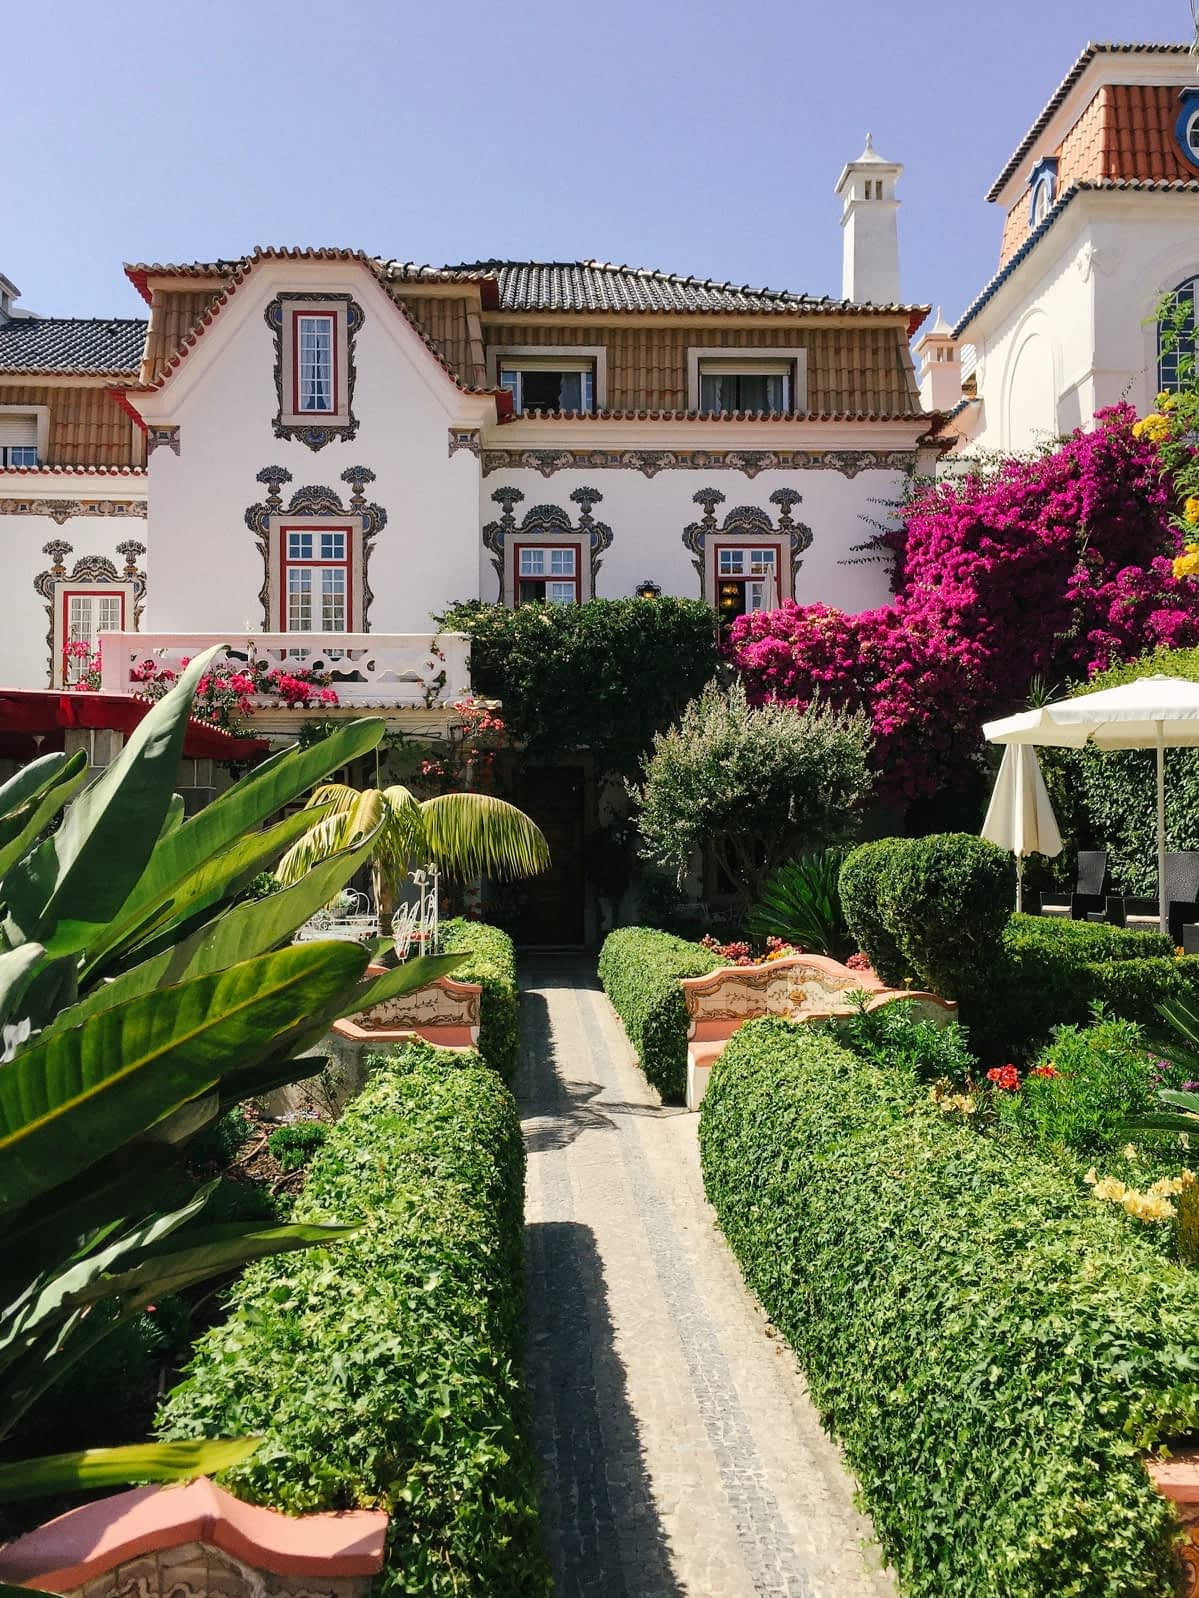 Awesome day trips from Lisbon!